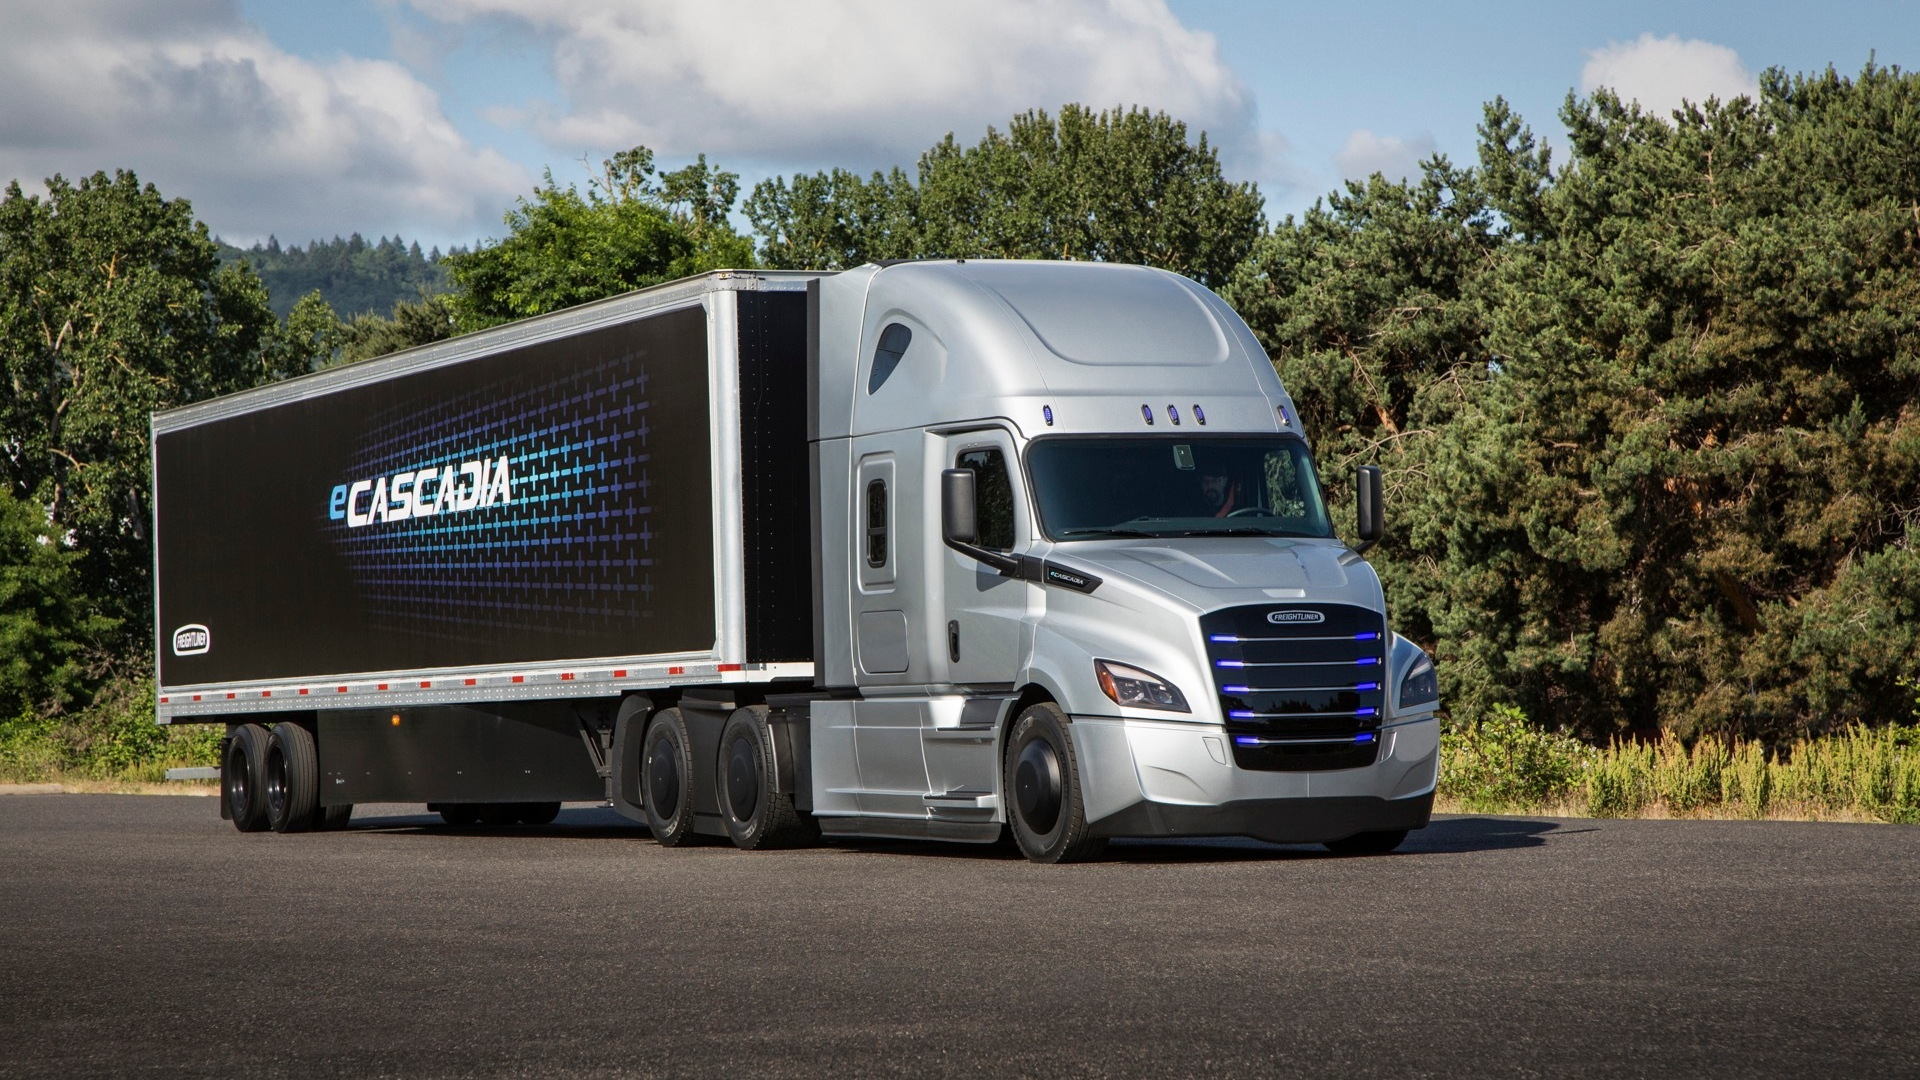 Quiet launch: Daimler builds first electric heavy-duty semis